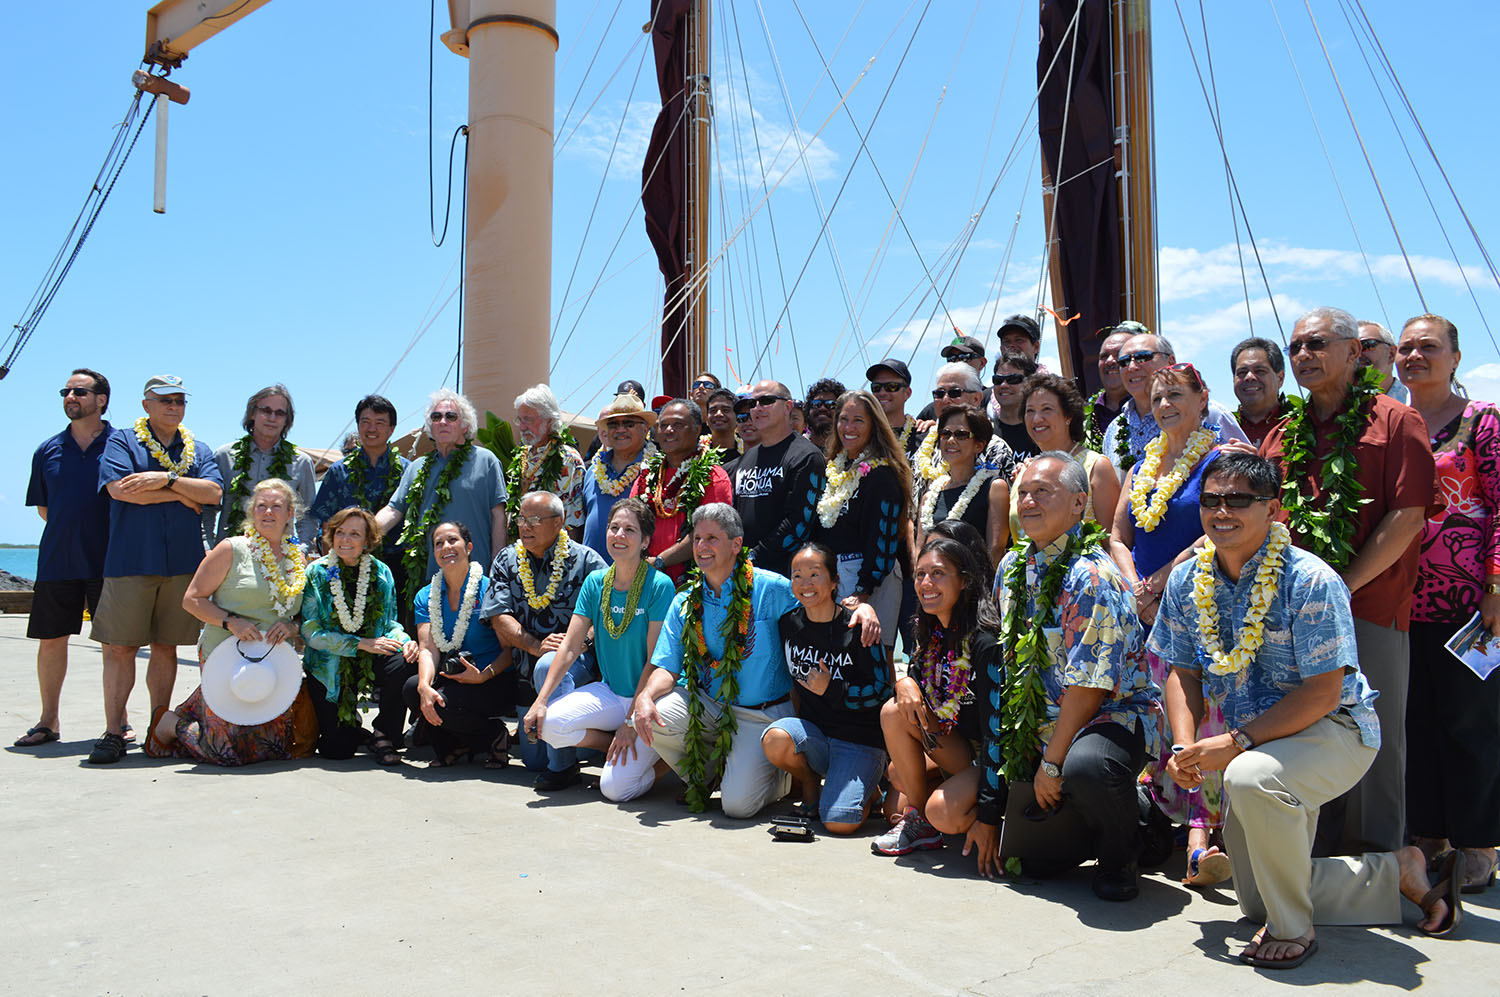 Hokulea Group Photo